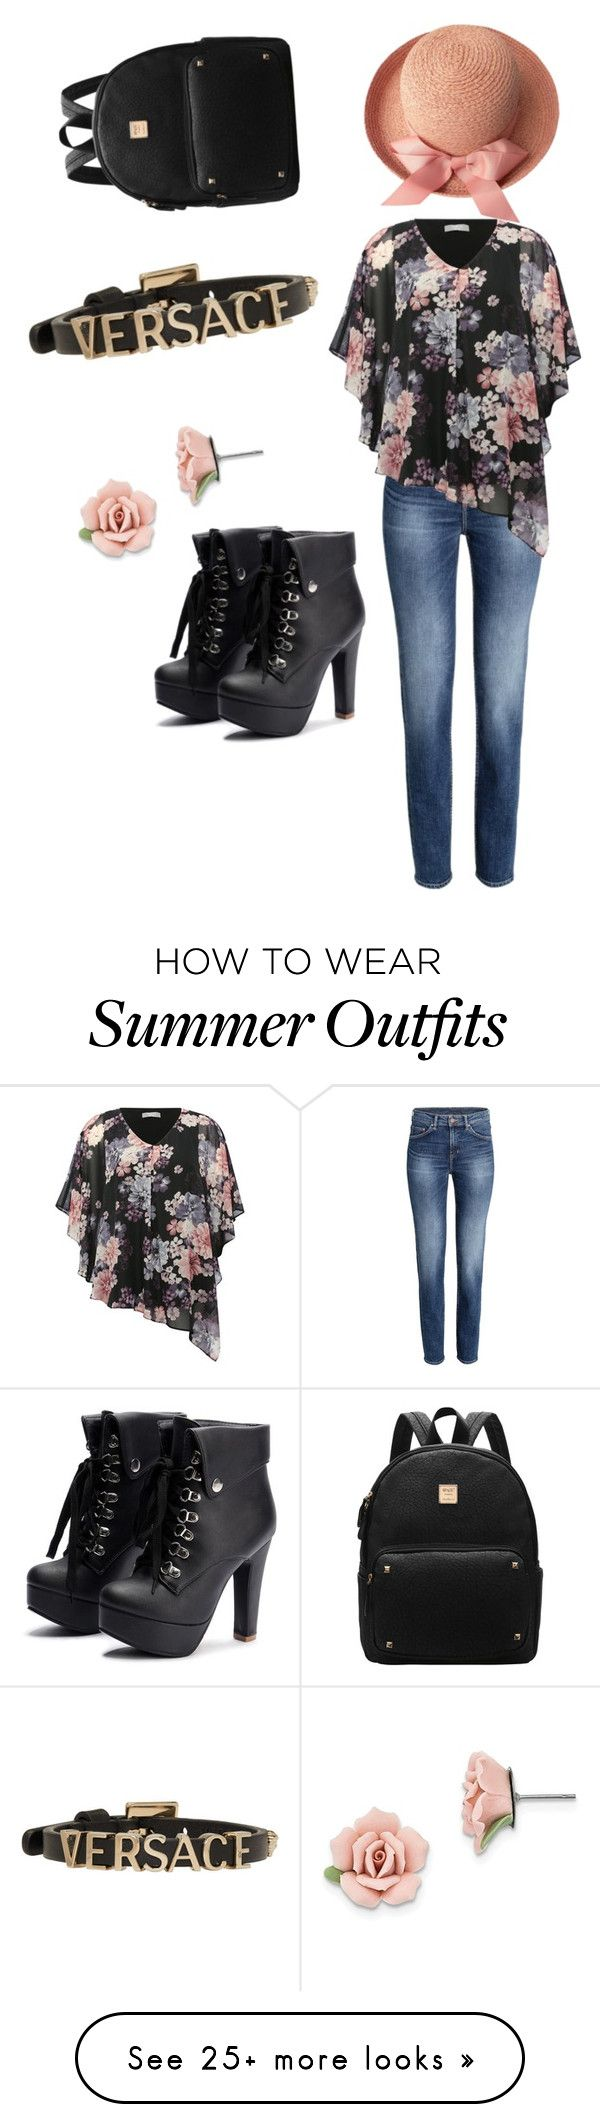 """""""My First Polyvore Outfit"""" by elizaveta-ponarina on Polyvore featuring..."""